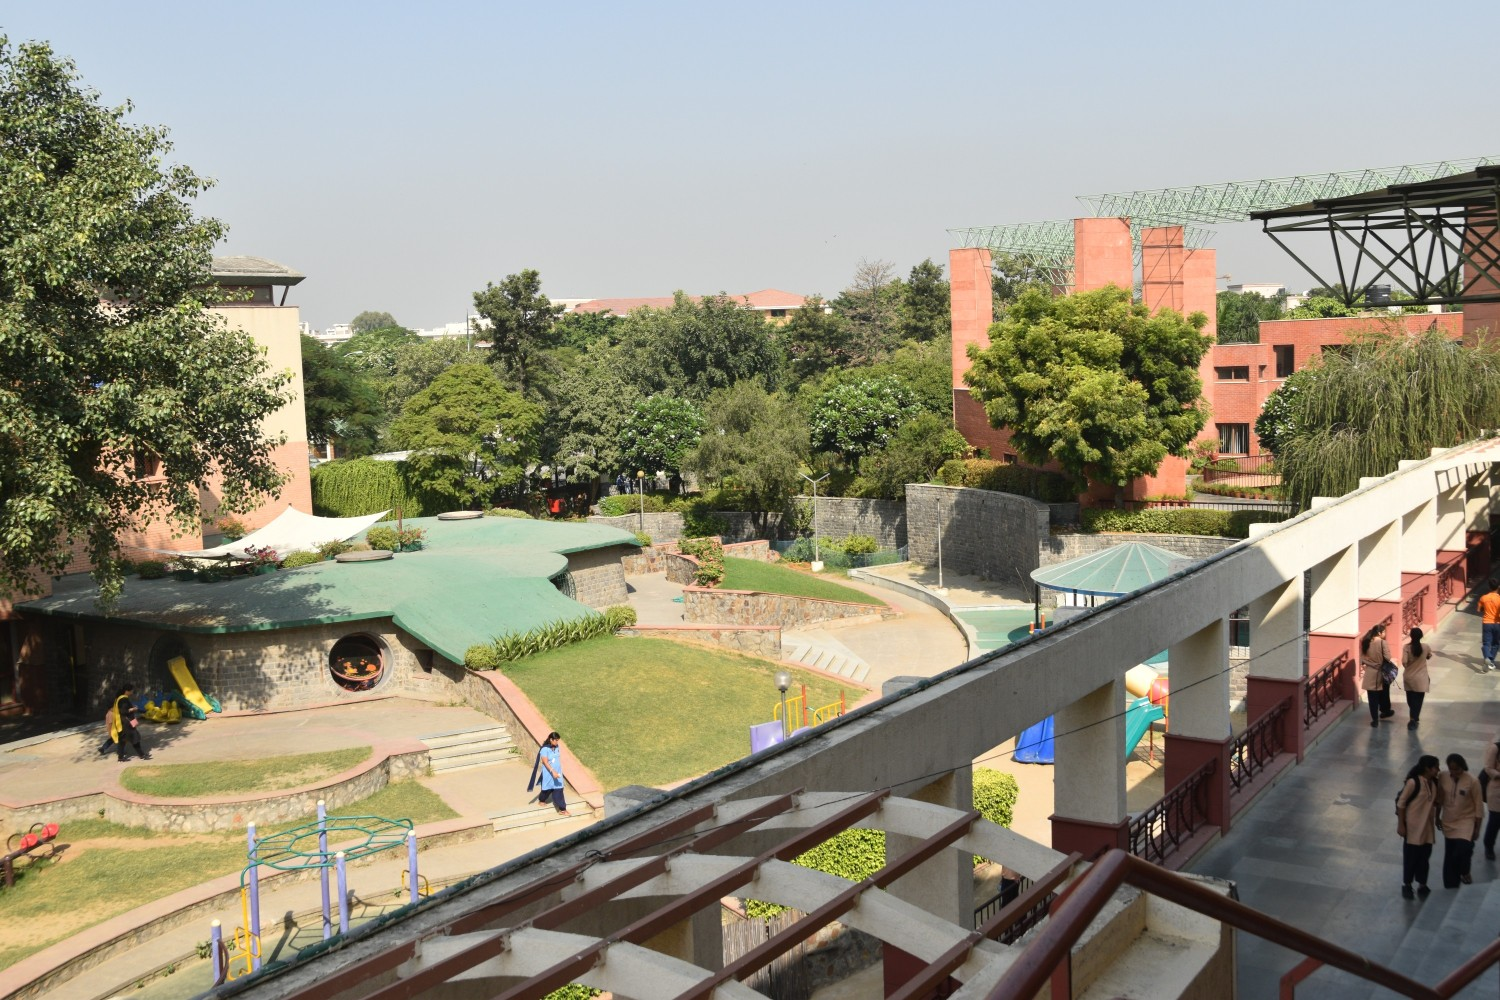 View of the school from top of the auditorium